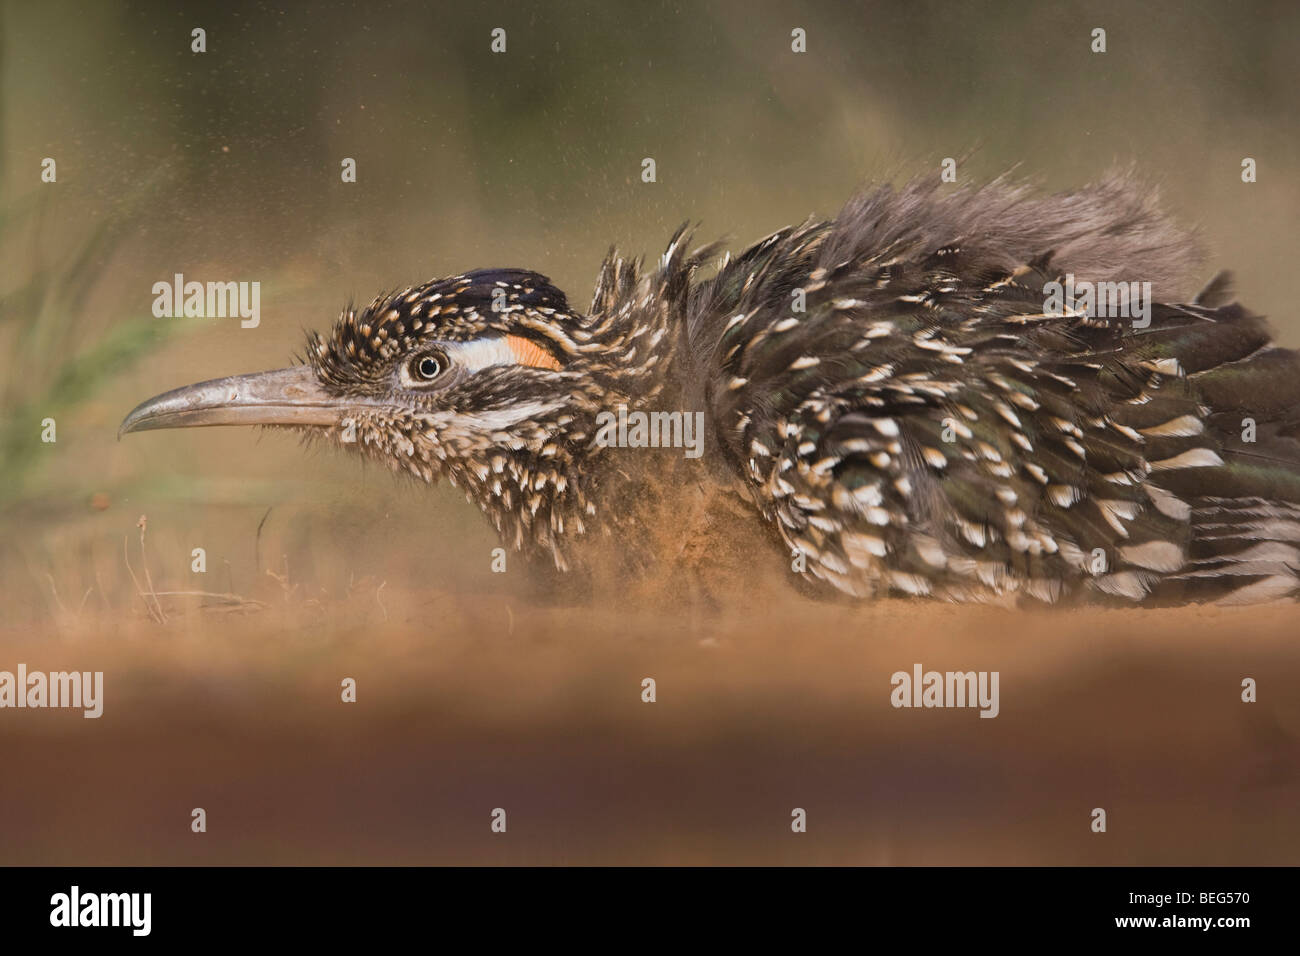 Greater Roadrunner (Geococcyx californianus),adult dust bathing, Starr County, Rio Grande Valley, Texas, USA - Stock Image